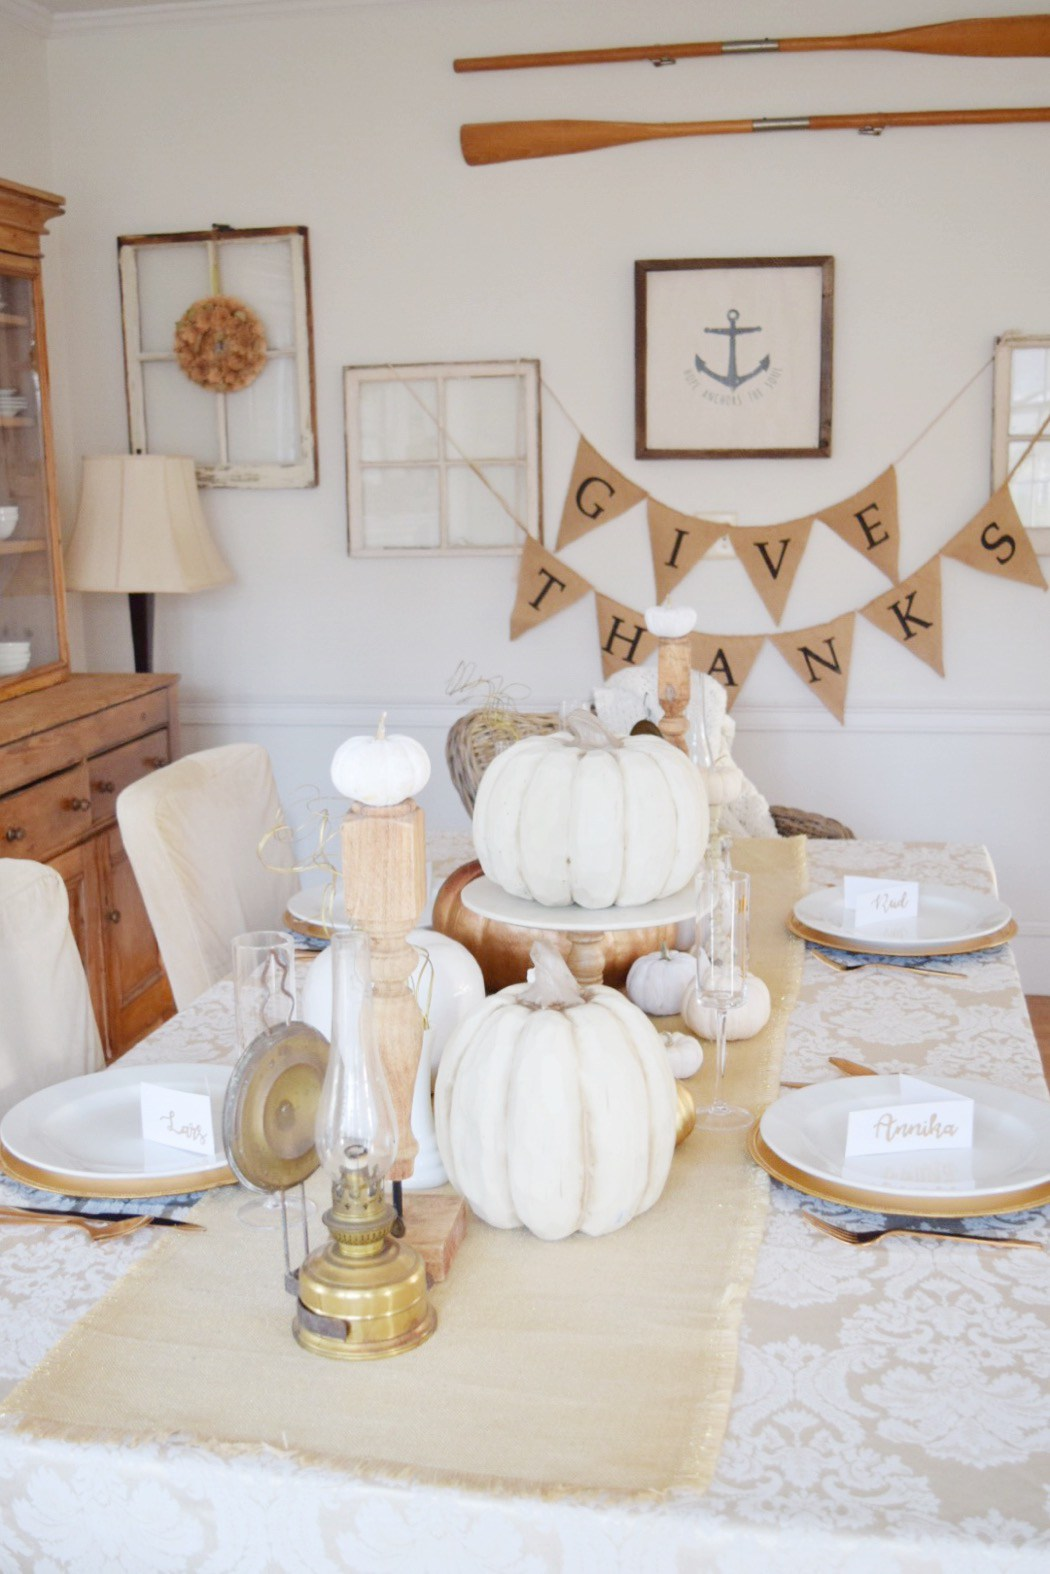 Thanksgiving Tablescapes With Large White Pumpkins And Give Thanks Paper Banner Via Gratefully Vintage